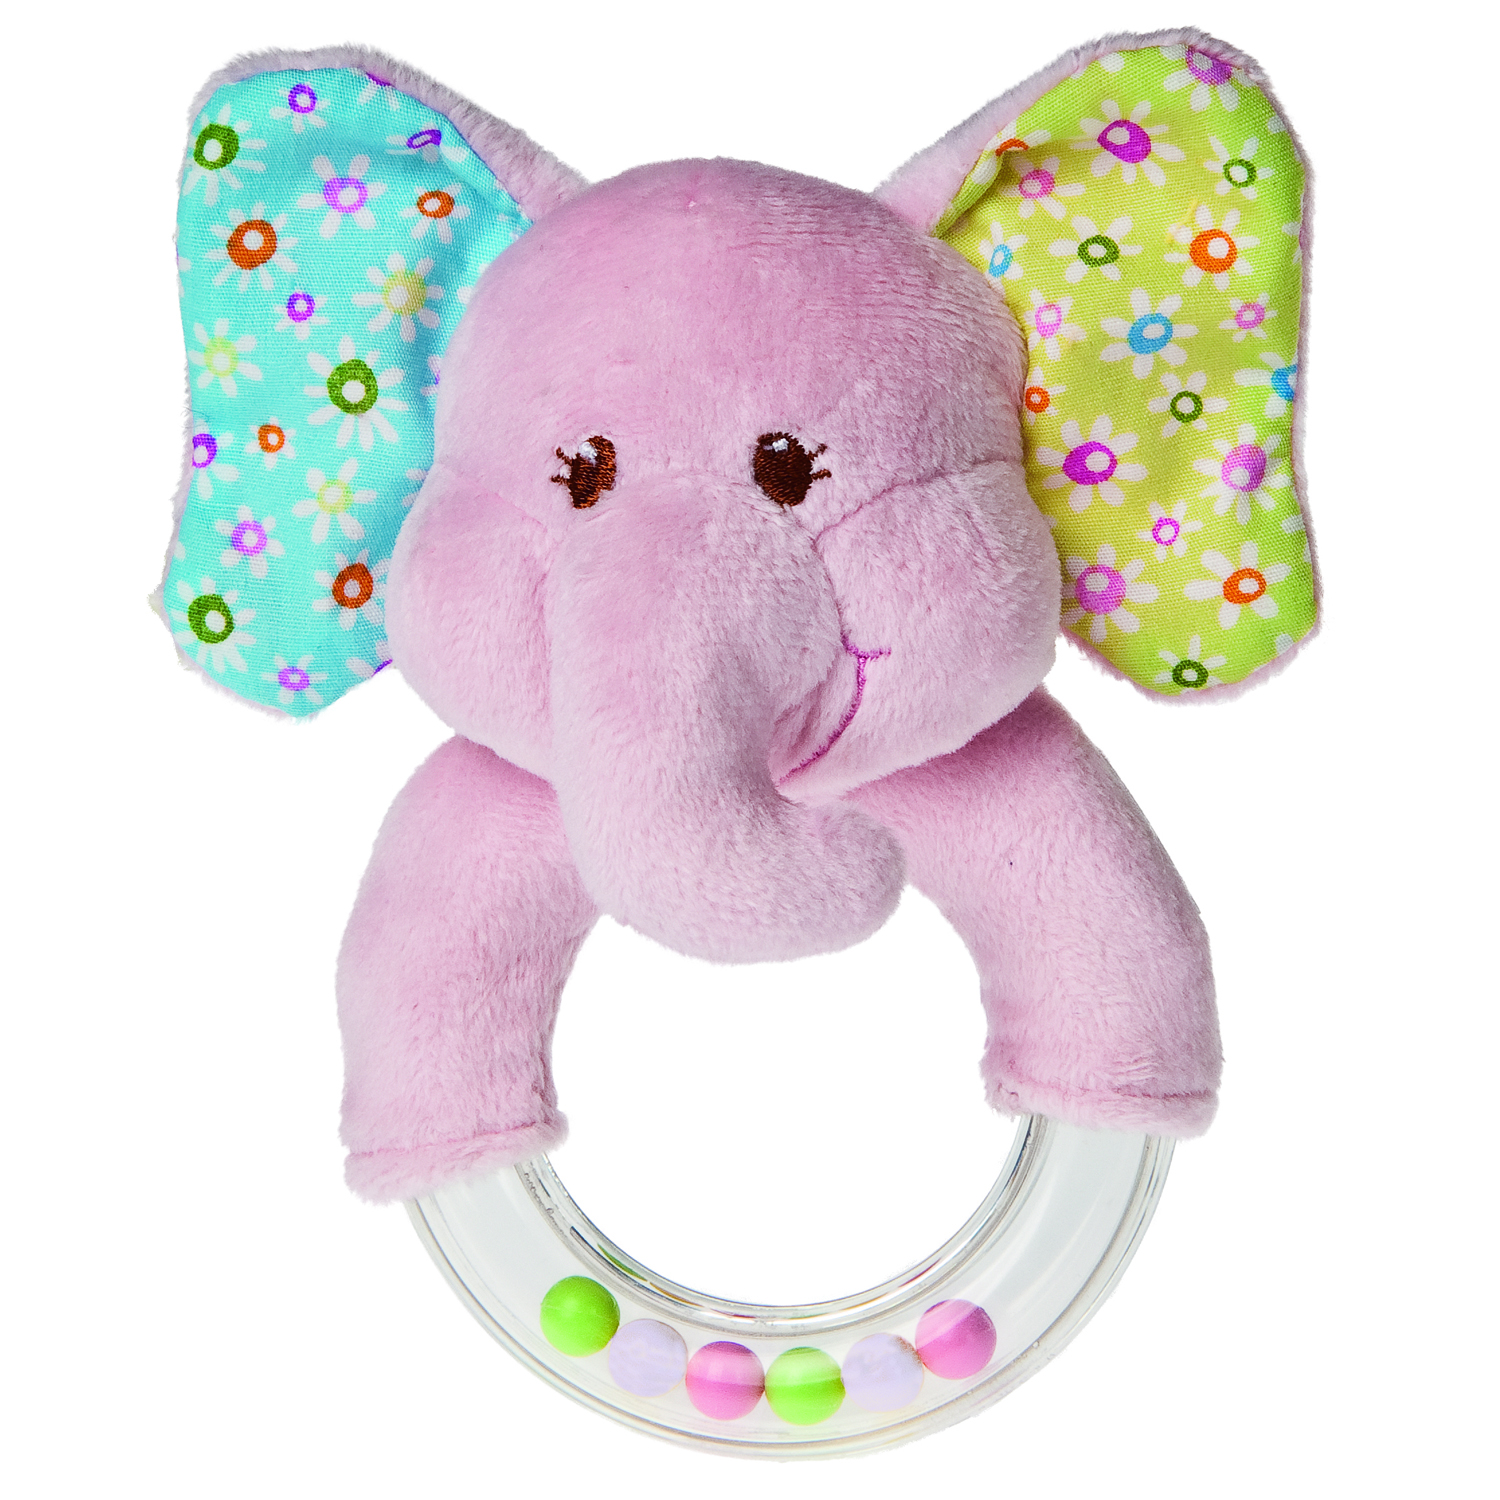 Top 5 Toys for 3 6 Months Old Baby Toddle Tiny Steps Big Dreams